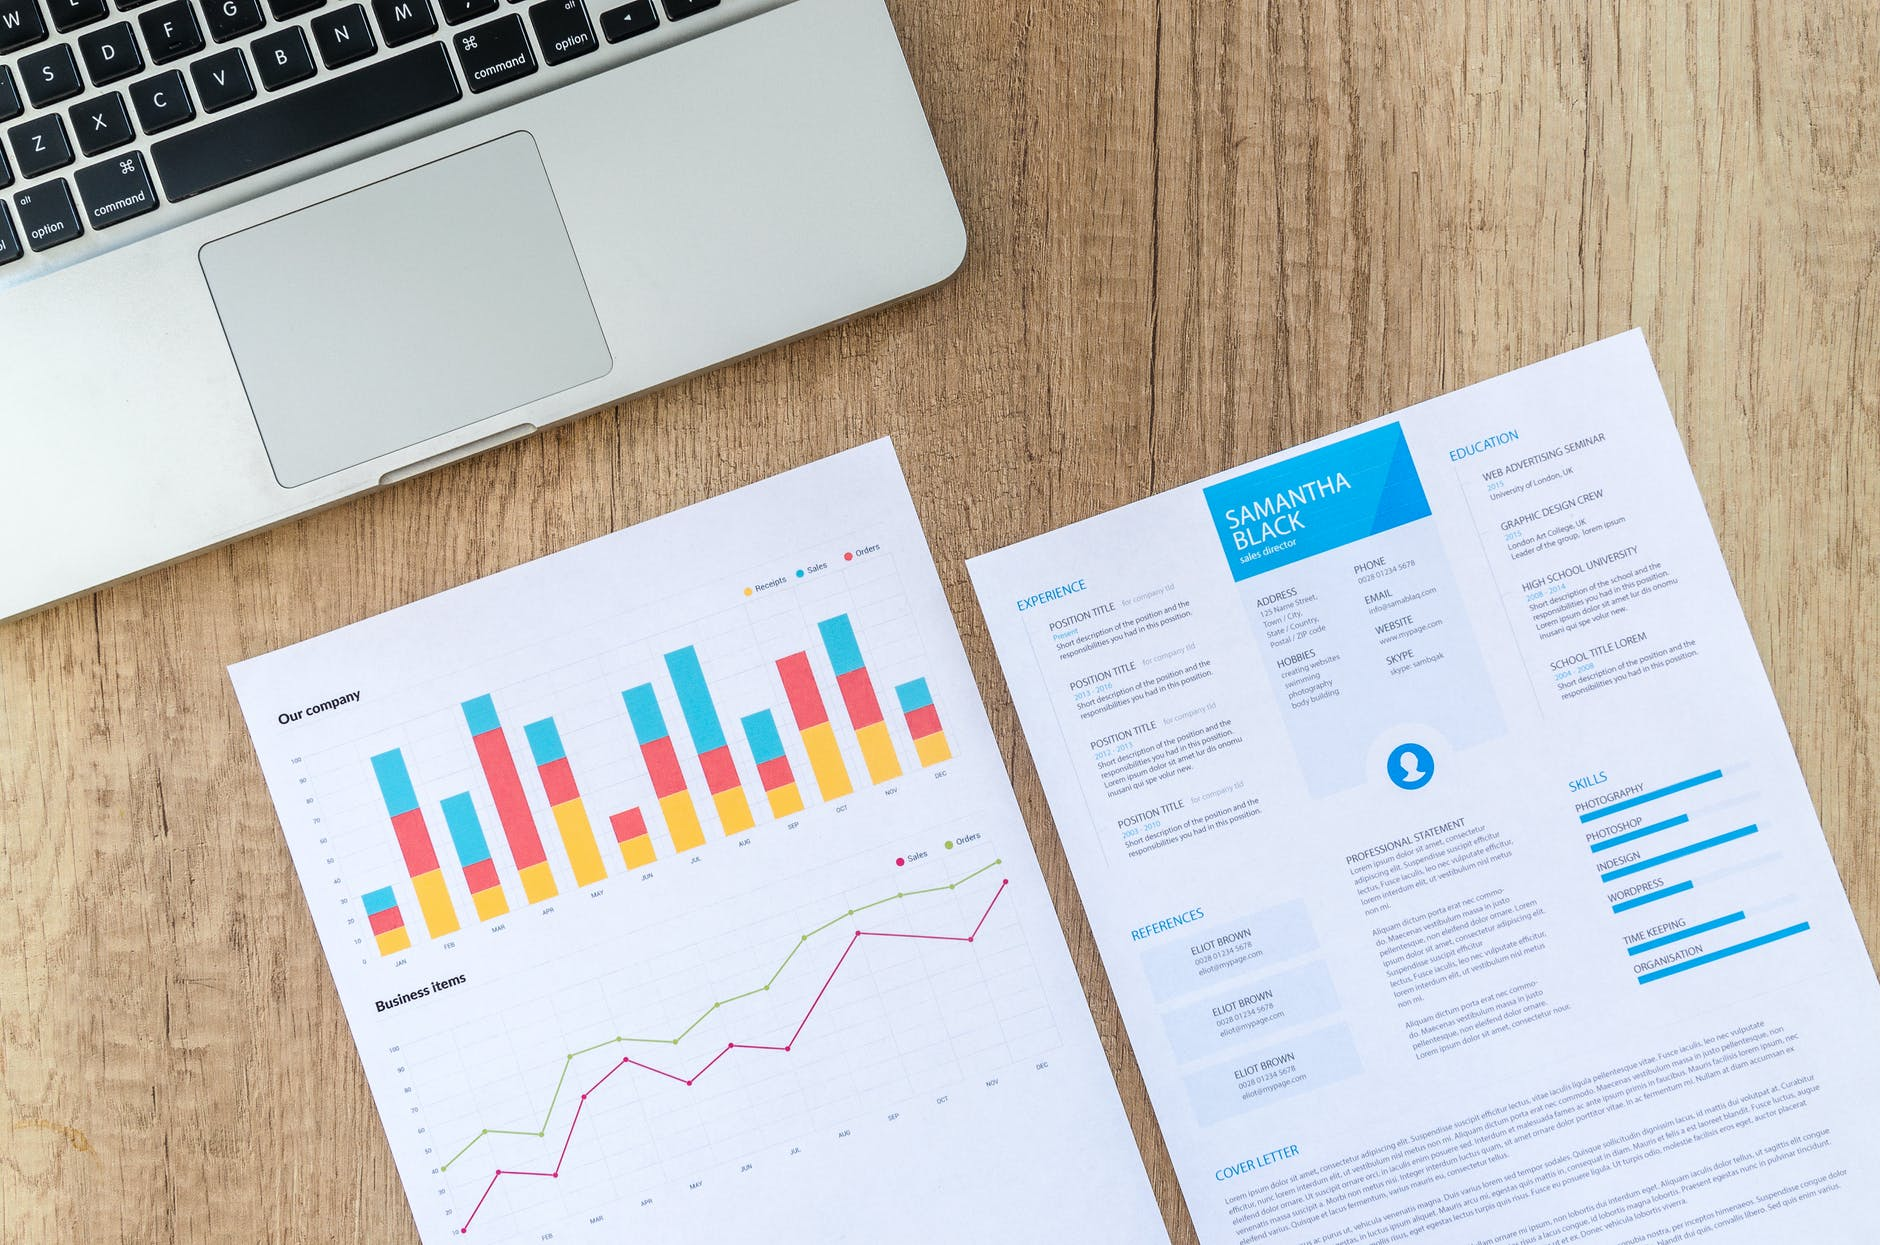 5 Challenges in Business Intelligence and How to Solve Them